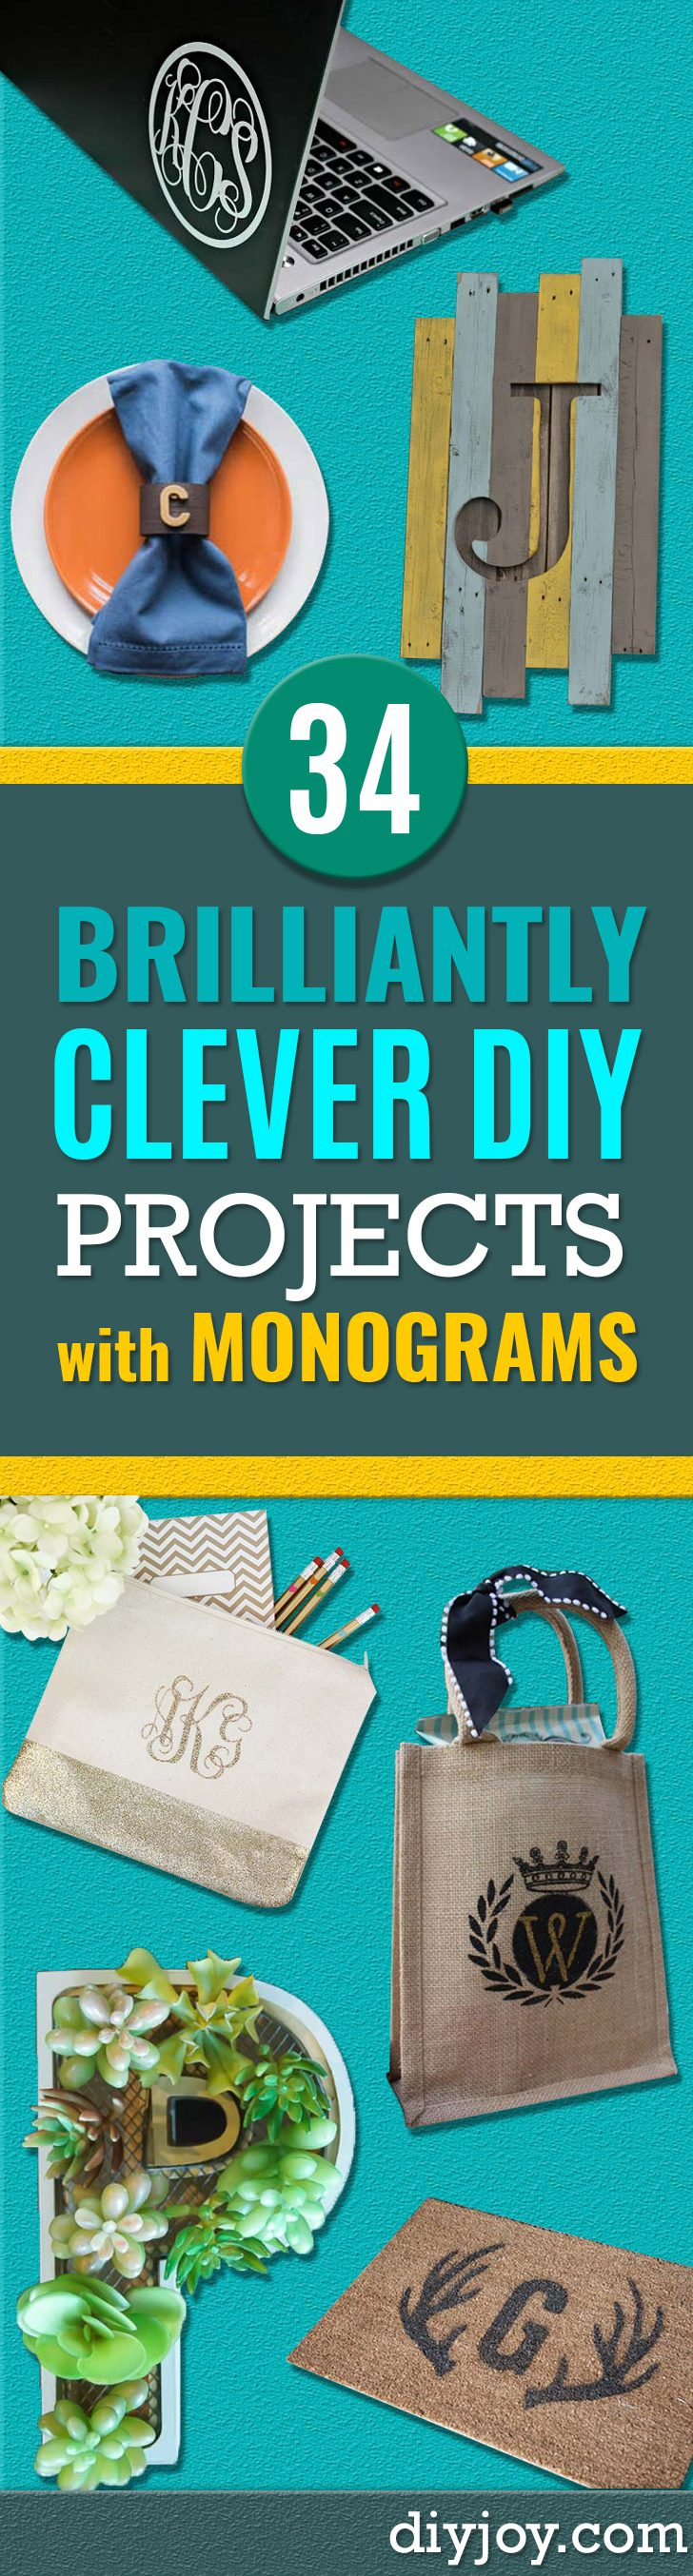 34 Brilliantly Clever Diy Projects With Monograms Diy Projects For Teens